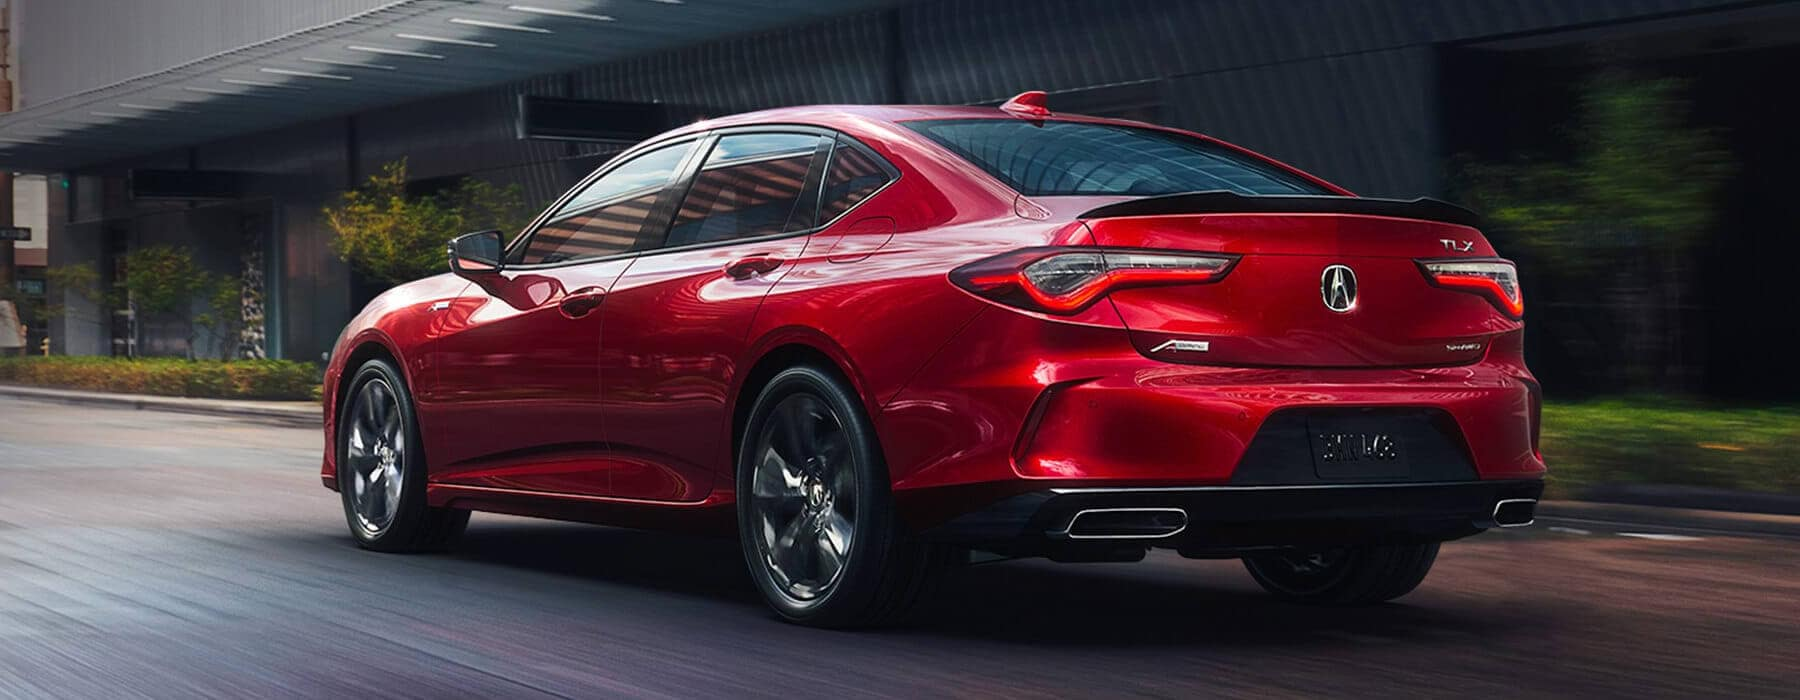 2021 Acura TLX Overview Slider